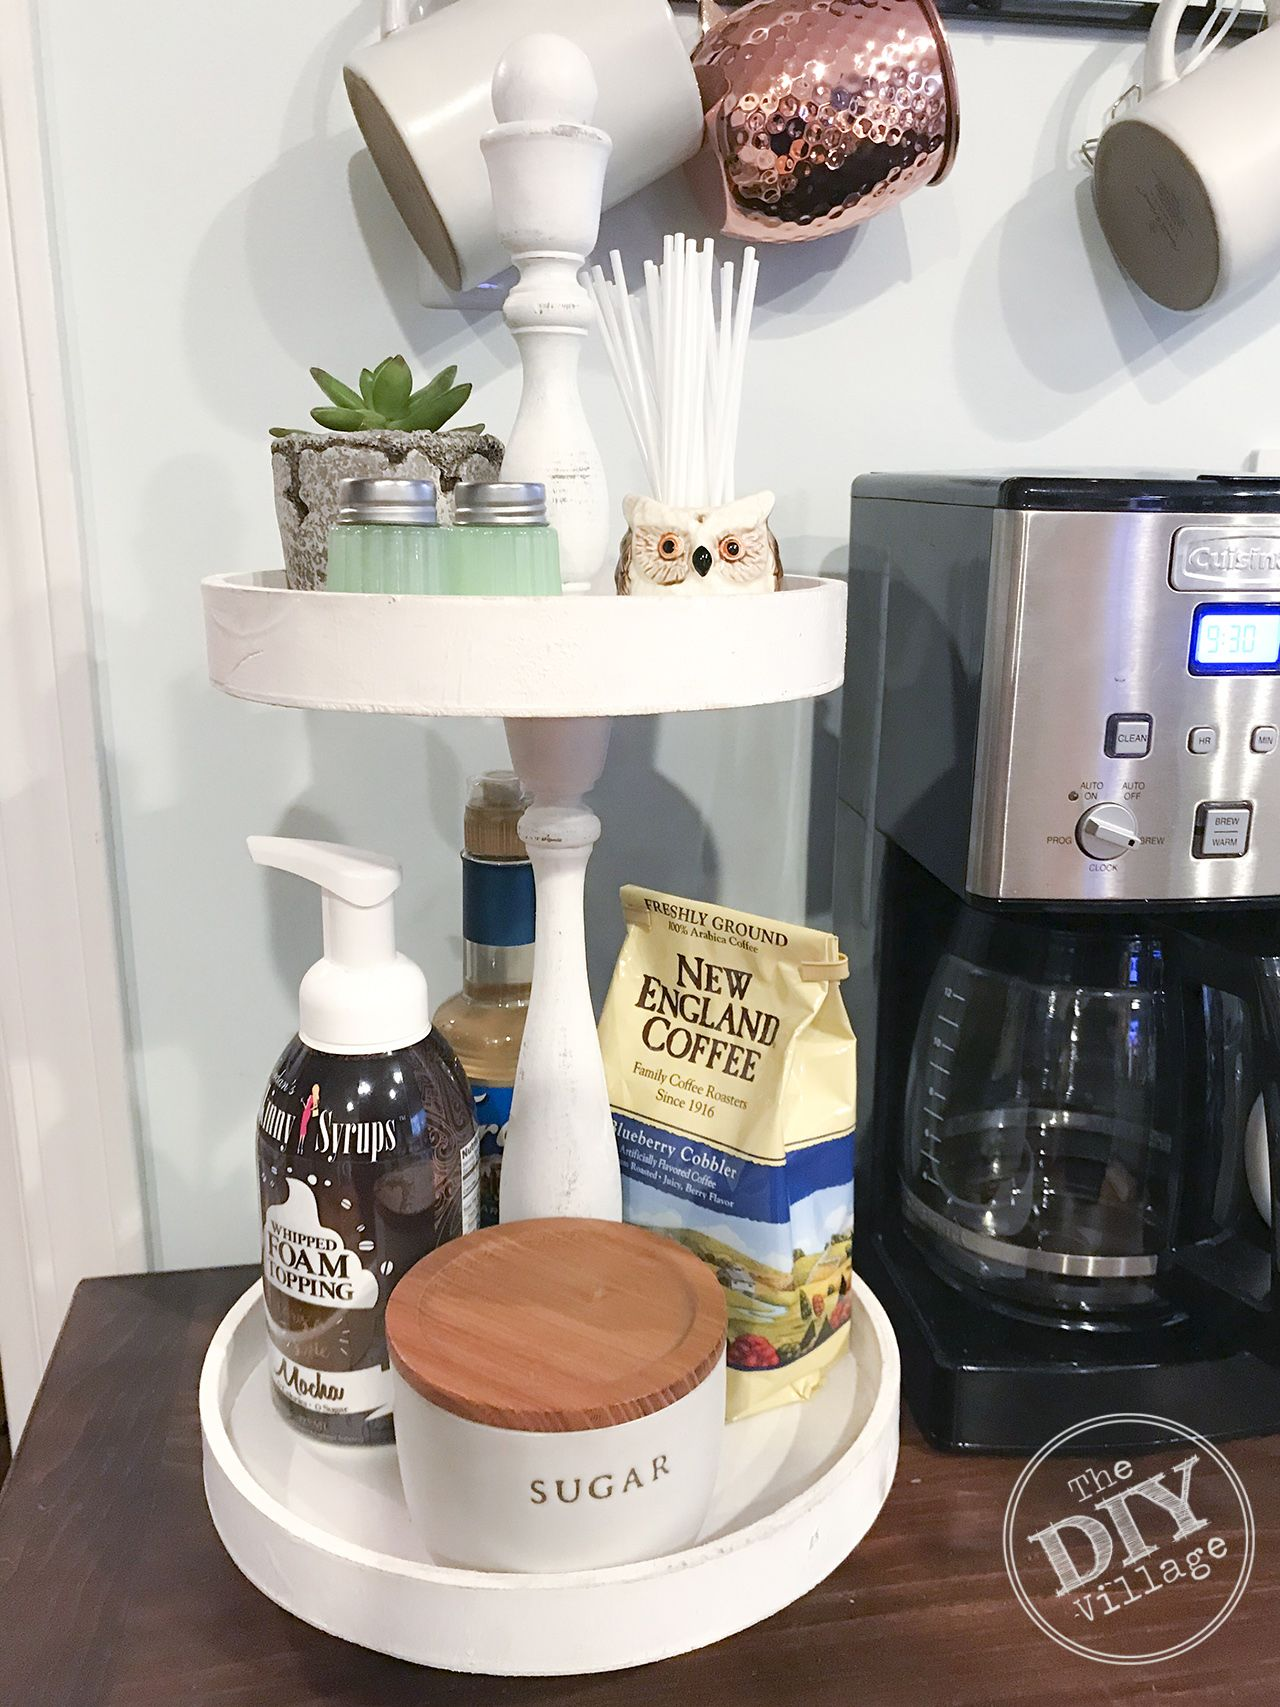 Easy DIY Kitchen Caddy (With images)   Kitchen caddy, Diy kitchen, Easy diy